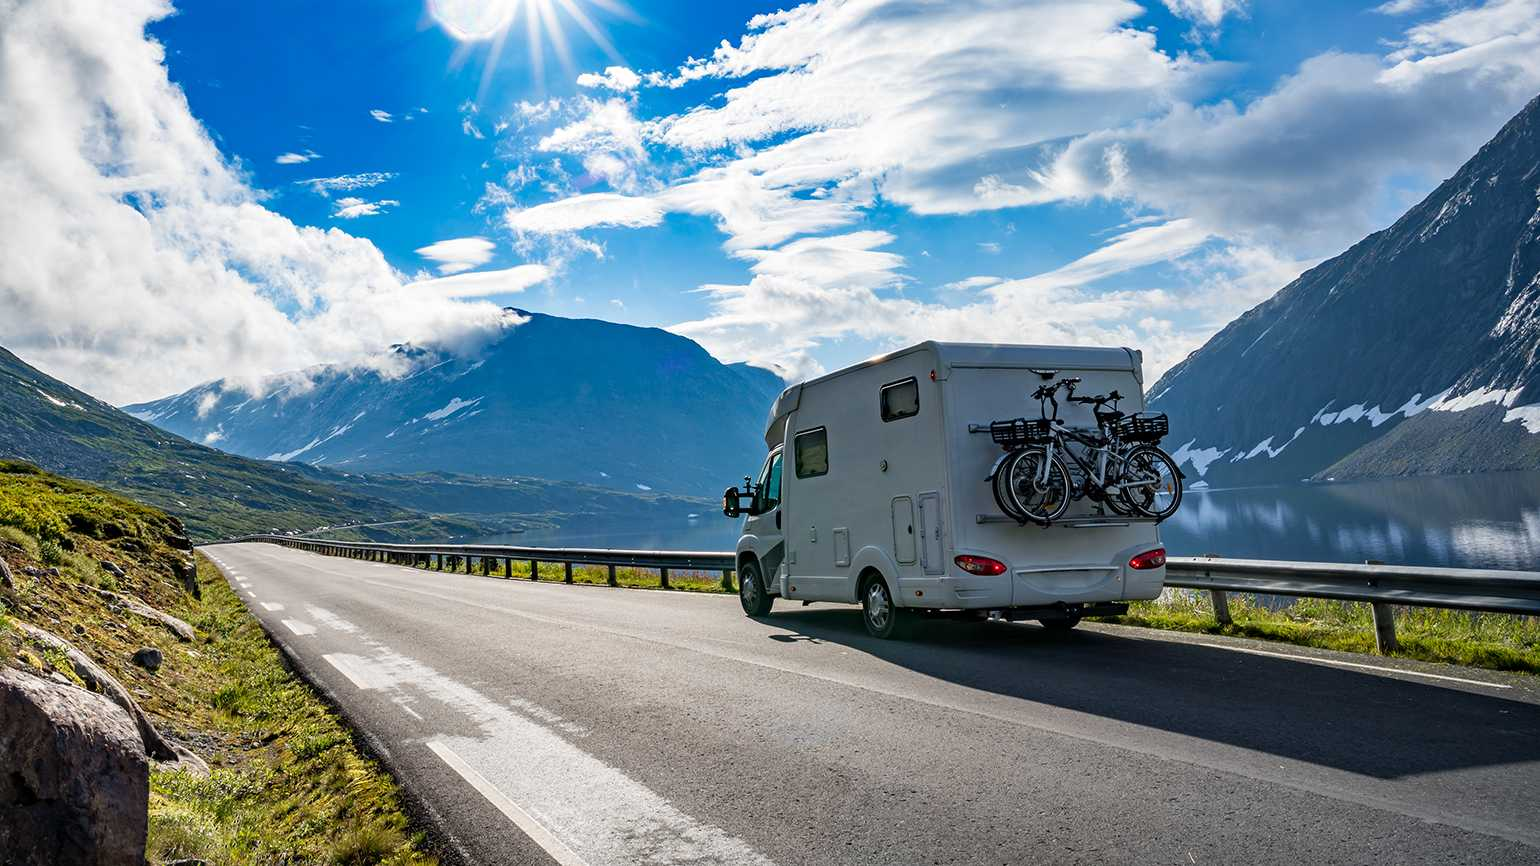 An RV on the open road in the mountains